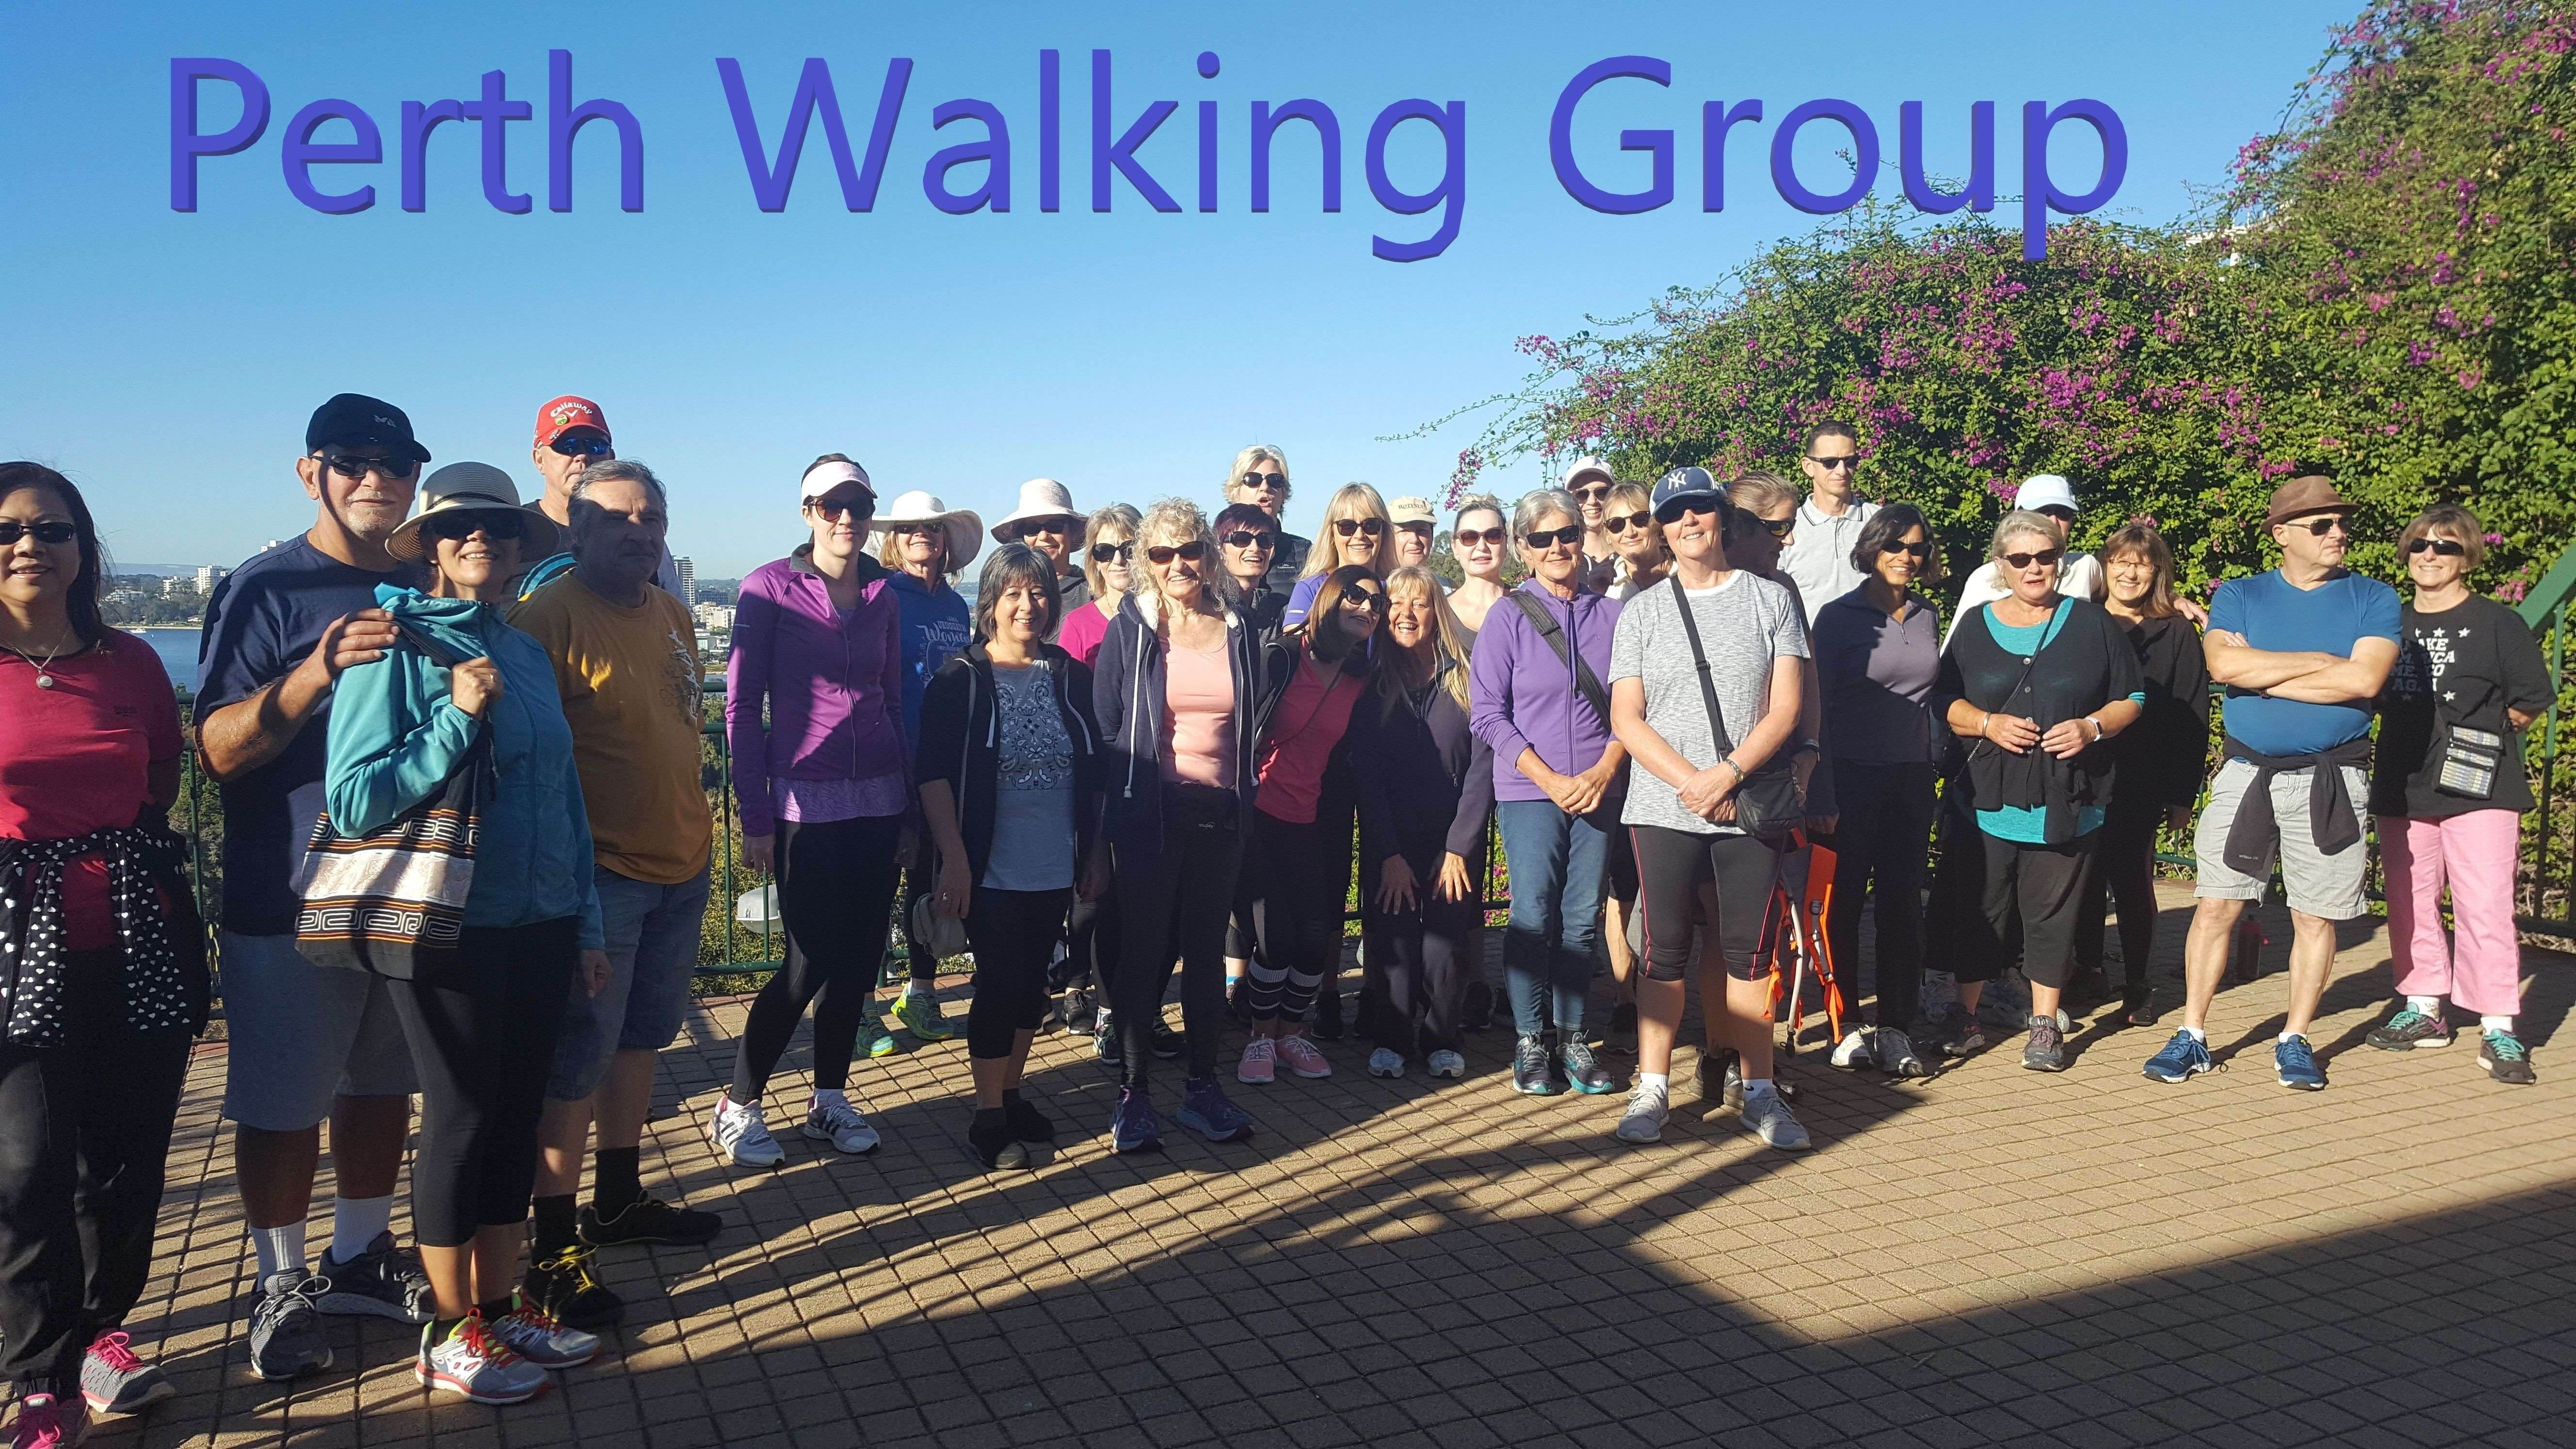 The Perth Walking Group